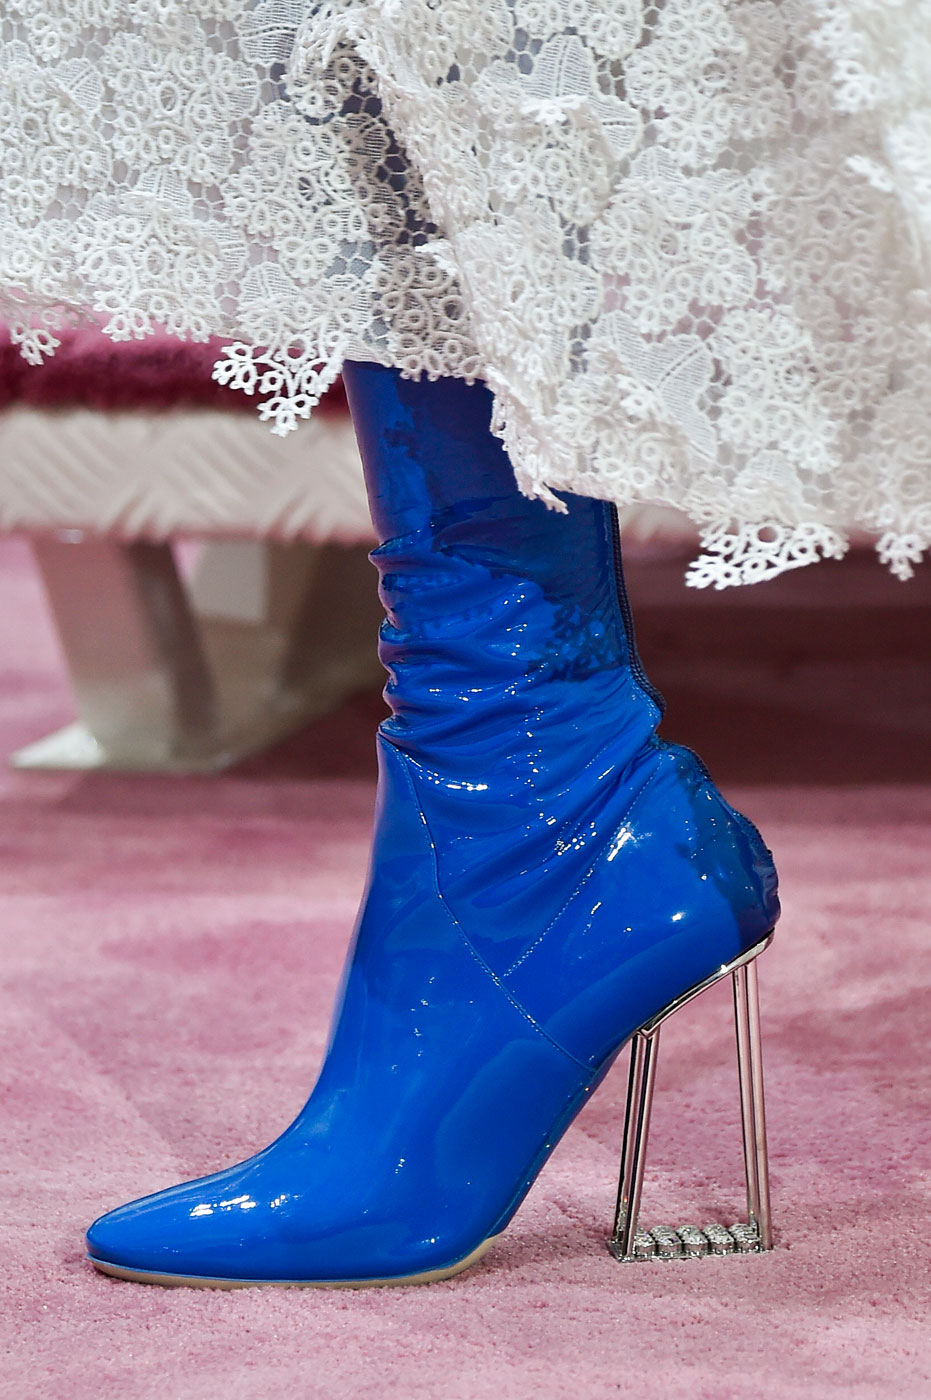 Christian-Dior-fashion-runway-show-close-ups-haute-couture-paris-spring-summer-2015-the-impression-136